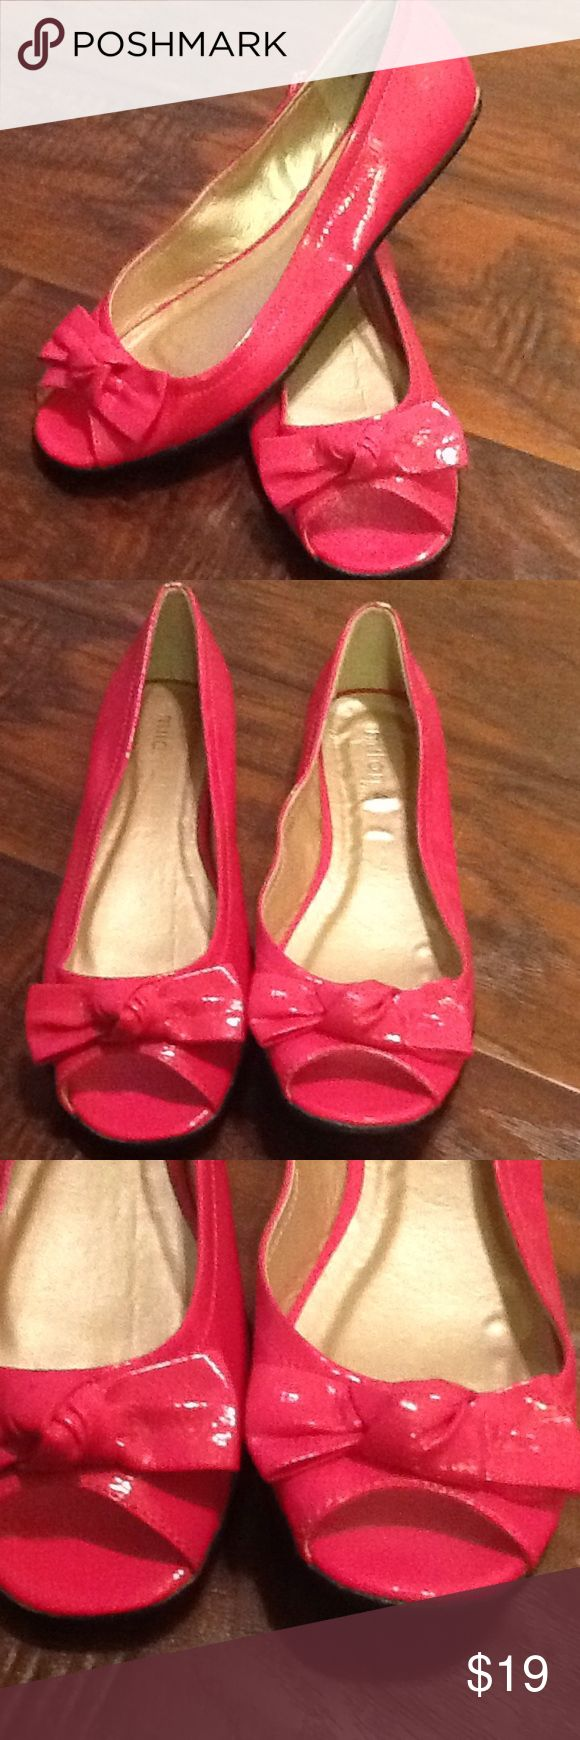 Milan 44 Designs Shoes 6.5 Pink Open Toe Flats This is a new pair of shoes, never worn outside. Slight wear from handling. Tiny scuffs on back, see pics. Overall nice pair of shoes. Thanks in advance for looking. Milan 44 Designs Shoes Flats & Loafers